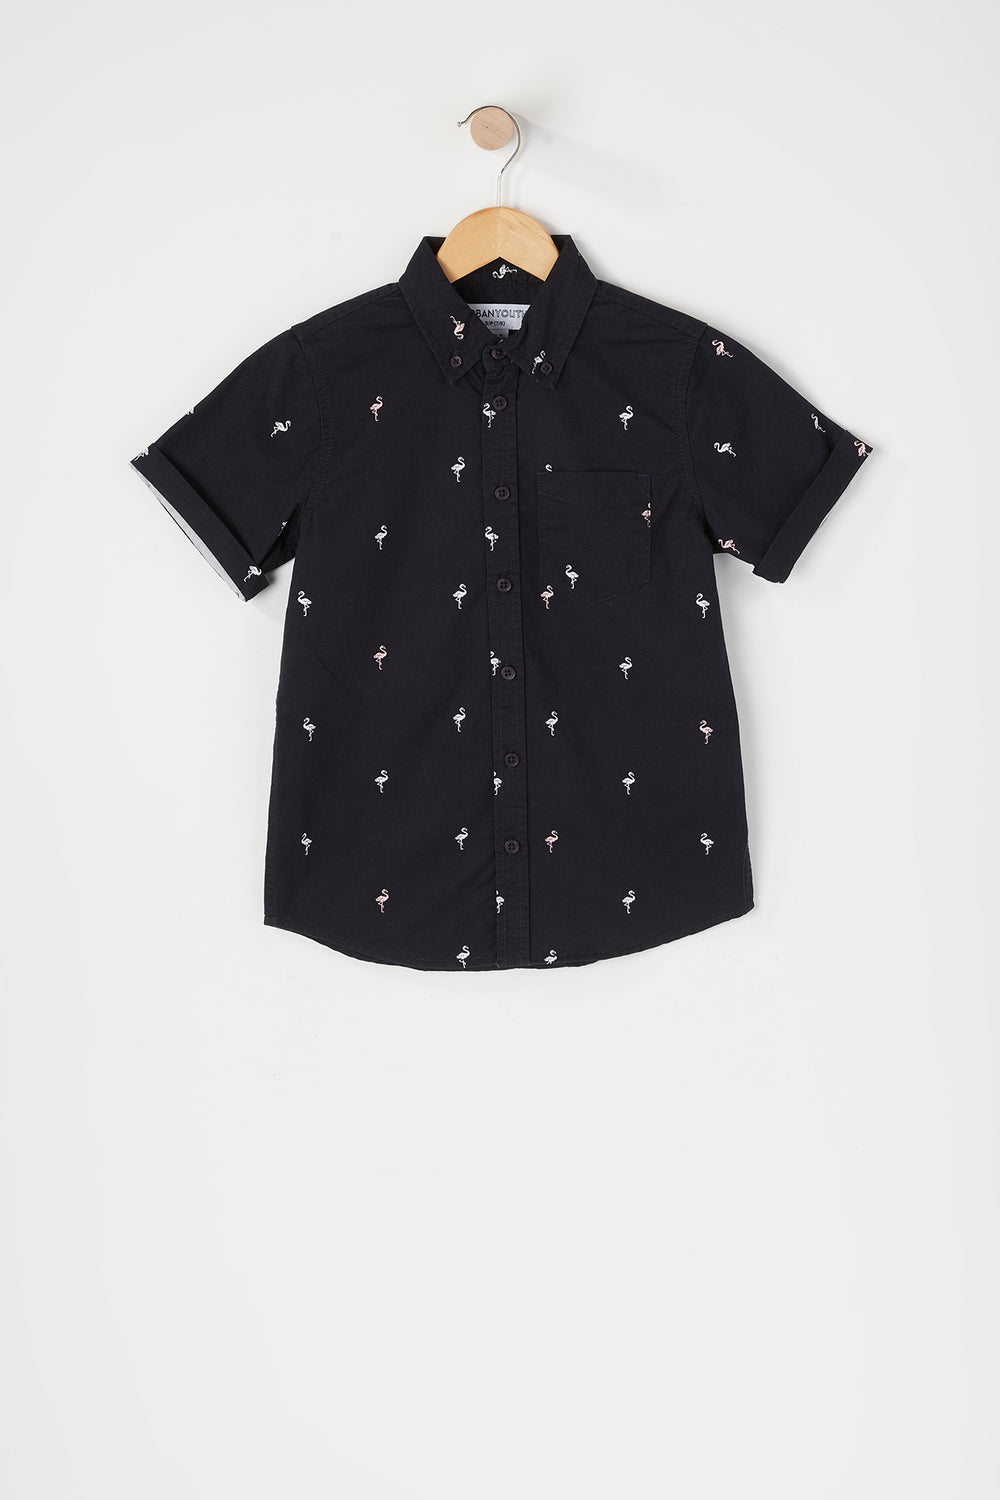 Boys Printed Button-Up Short Sleeve Shirt Navy